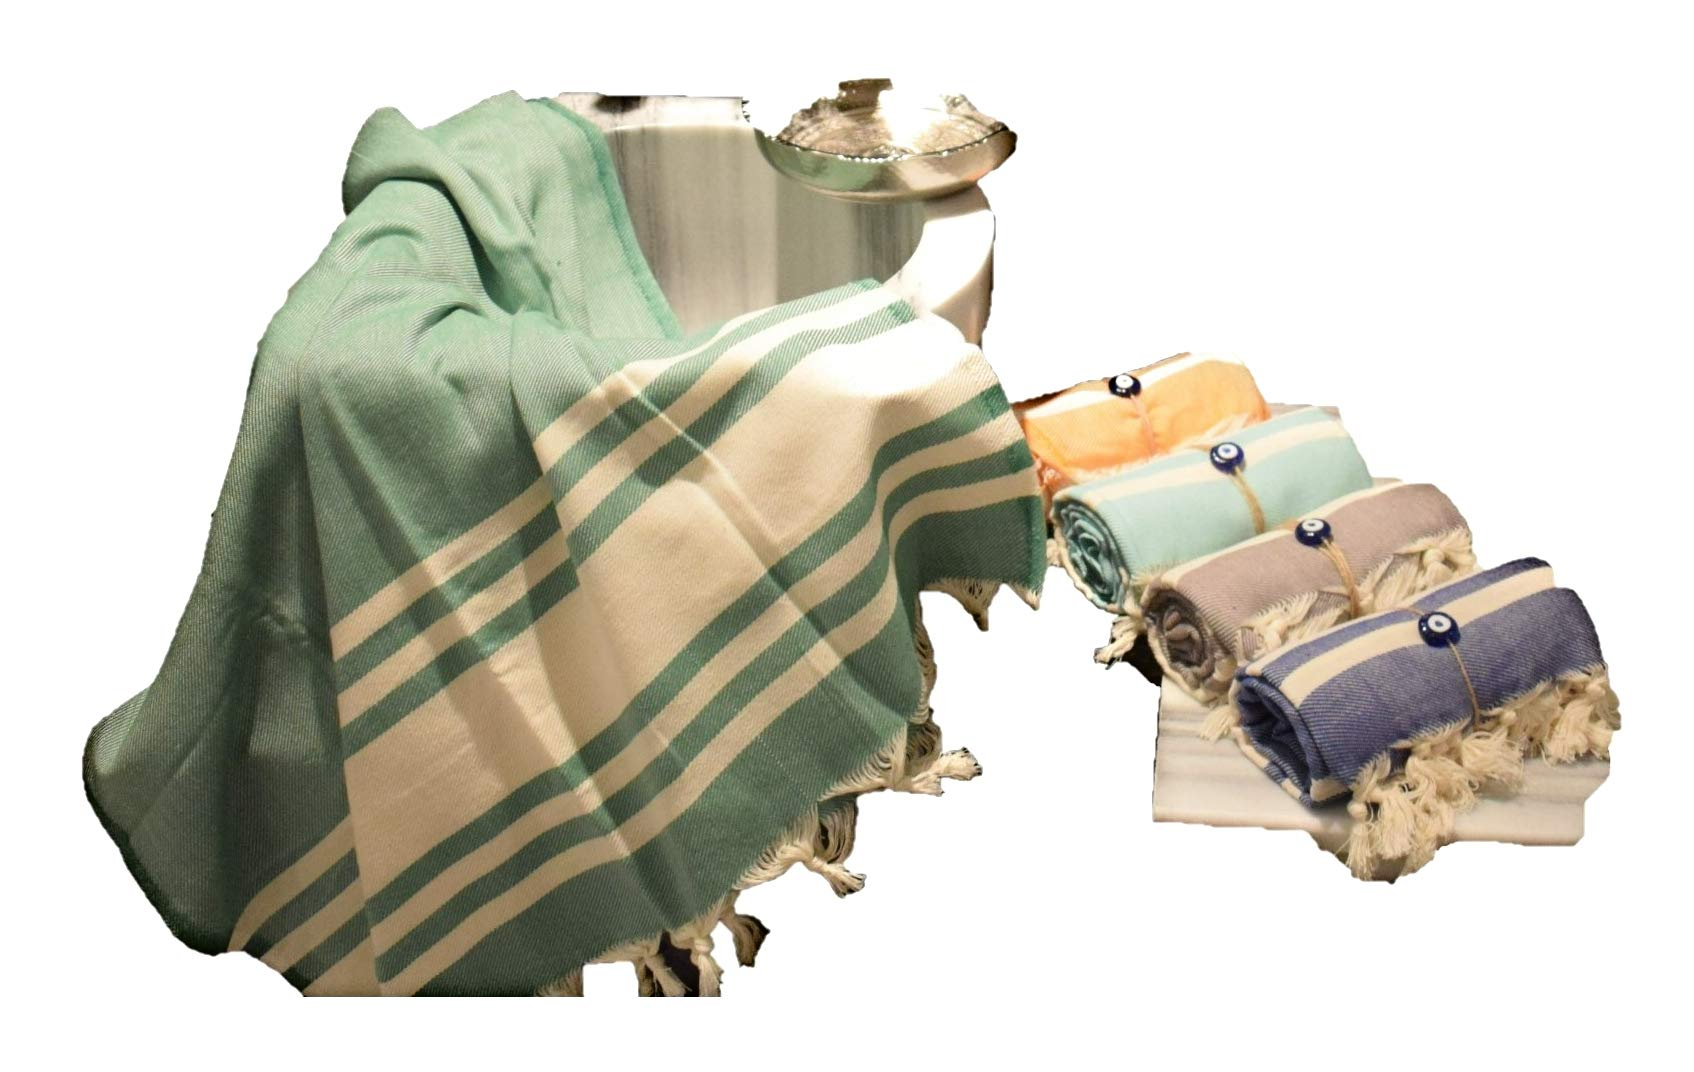 G&O Design Turkish Peshtemal Towel (Truva Peshtemal) (Green 31x66)%100 Cotton, Made in Turkey, Multipurpose Towels, Ecofriendly Absorbs Water as Fast as a Terry Towel Dries. - SOFT COTTON:'' Peshtemal Towel 31X66'' Made by %100 Premium Turkish Cotton and making the woven fabric ultra-soft on your skin and extremely absorbent. DRIES QUICKLY: These peshtemal towels dry even faster than most terry towels, and better yet, they get softer each and every time you wash them! LIGHTWEIGHT : Featuring a unique woven texture, our towels are extremely lightweight and comfortable, you can take it anywhere, it doesn't take much space. - bathroom-linens, bathroom, bath-towels - 71AmTt6qowL -